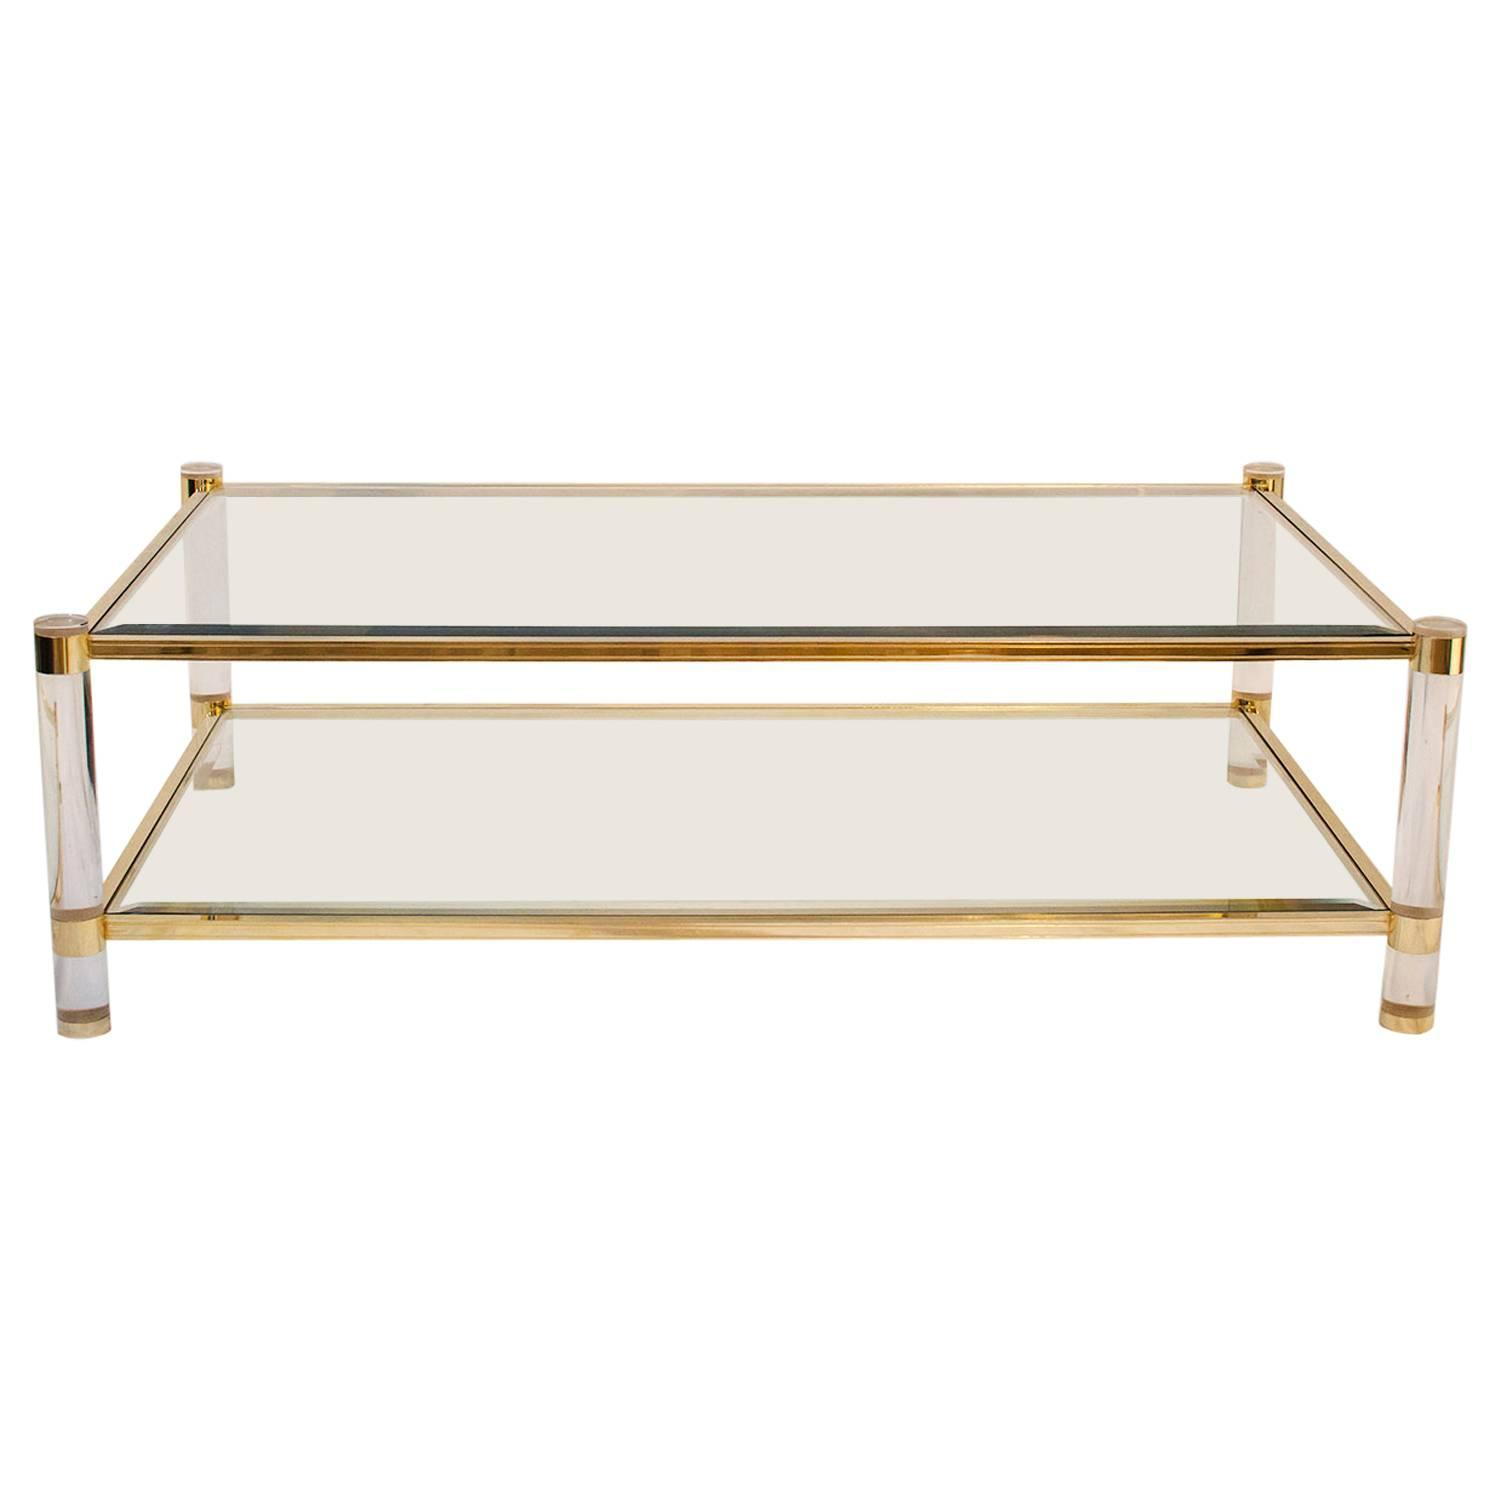 Lucite and brass coffee table france 1970s at 1stdibs for Lucite and brass coffee table